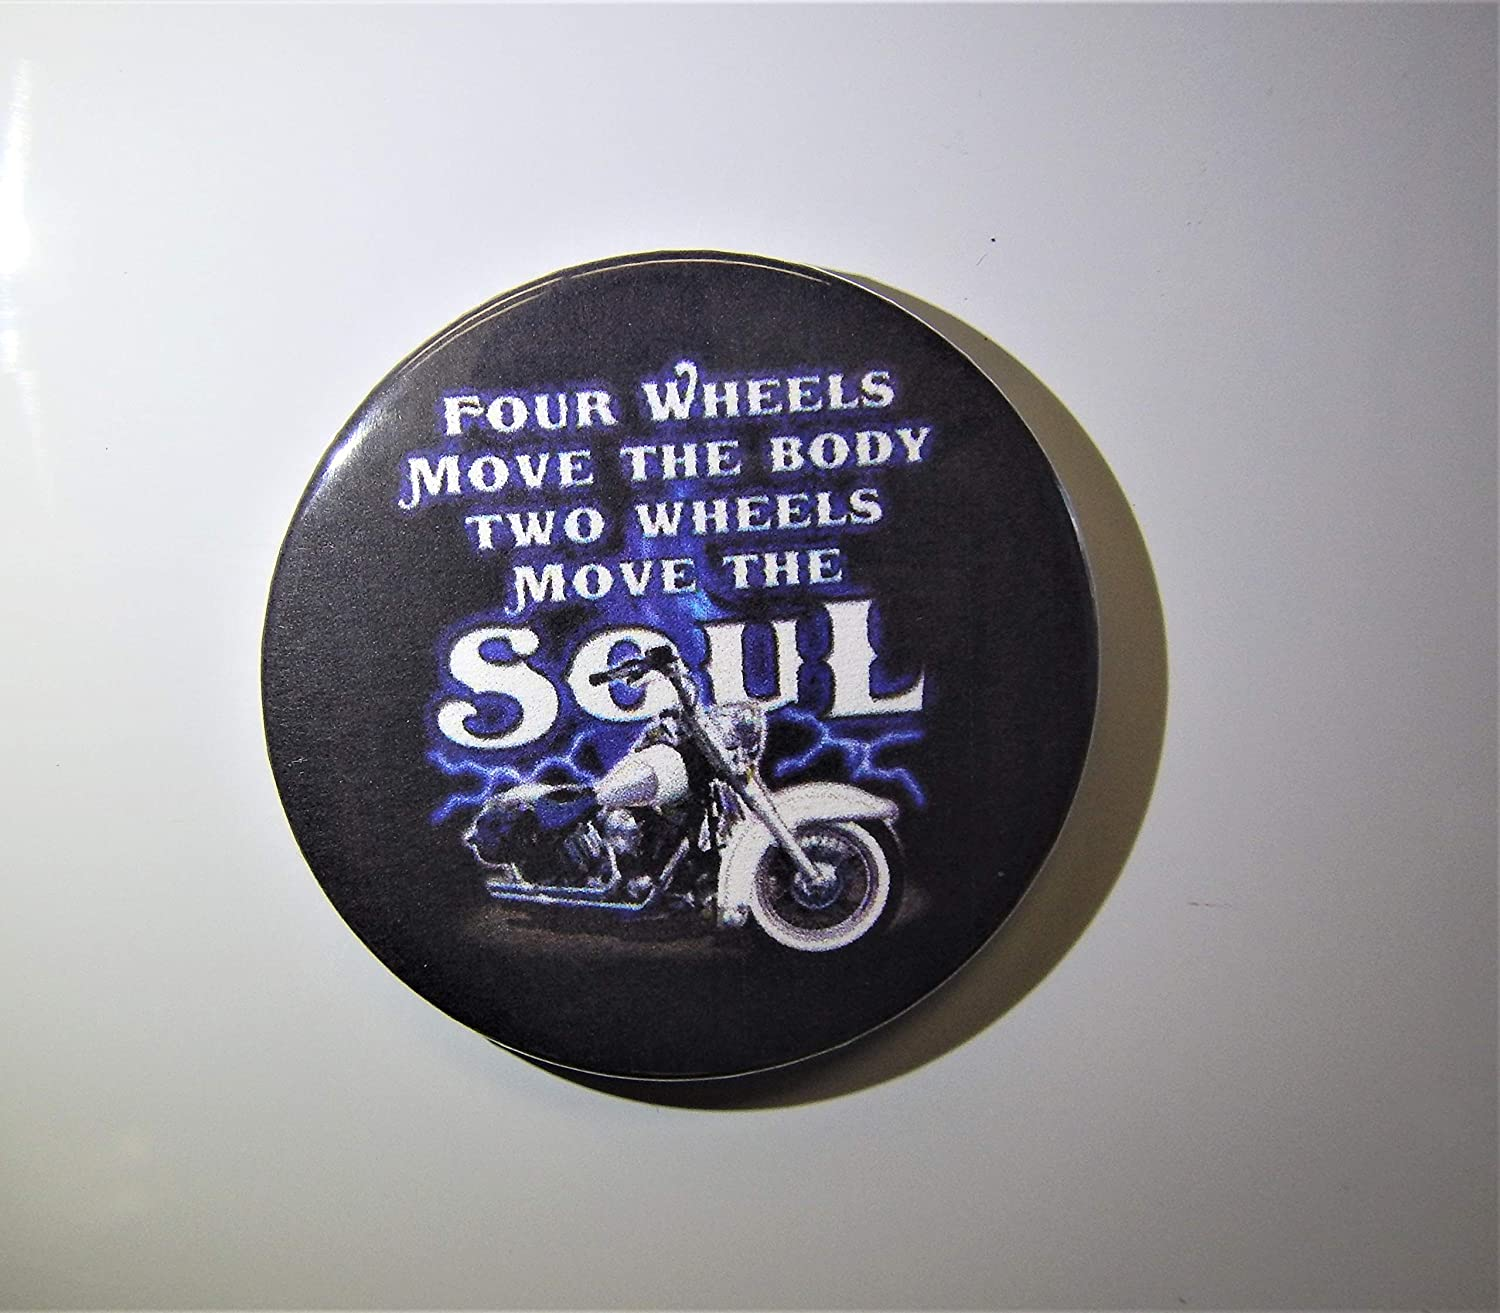 2.25 Refrigerator Magnet or Pin Back Button Two Wheels Move The Soul